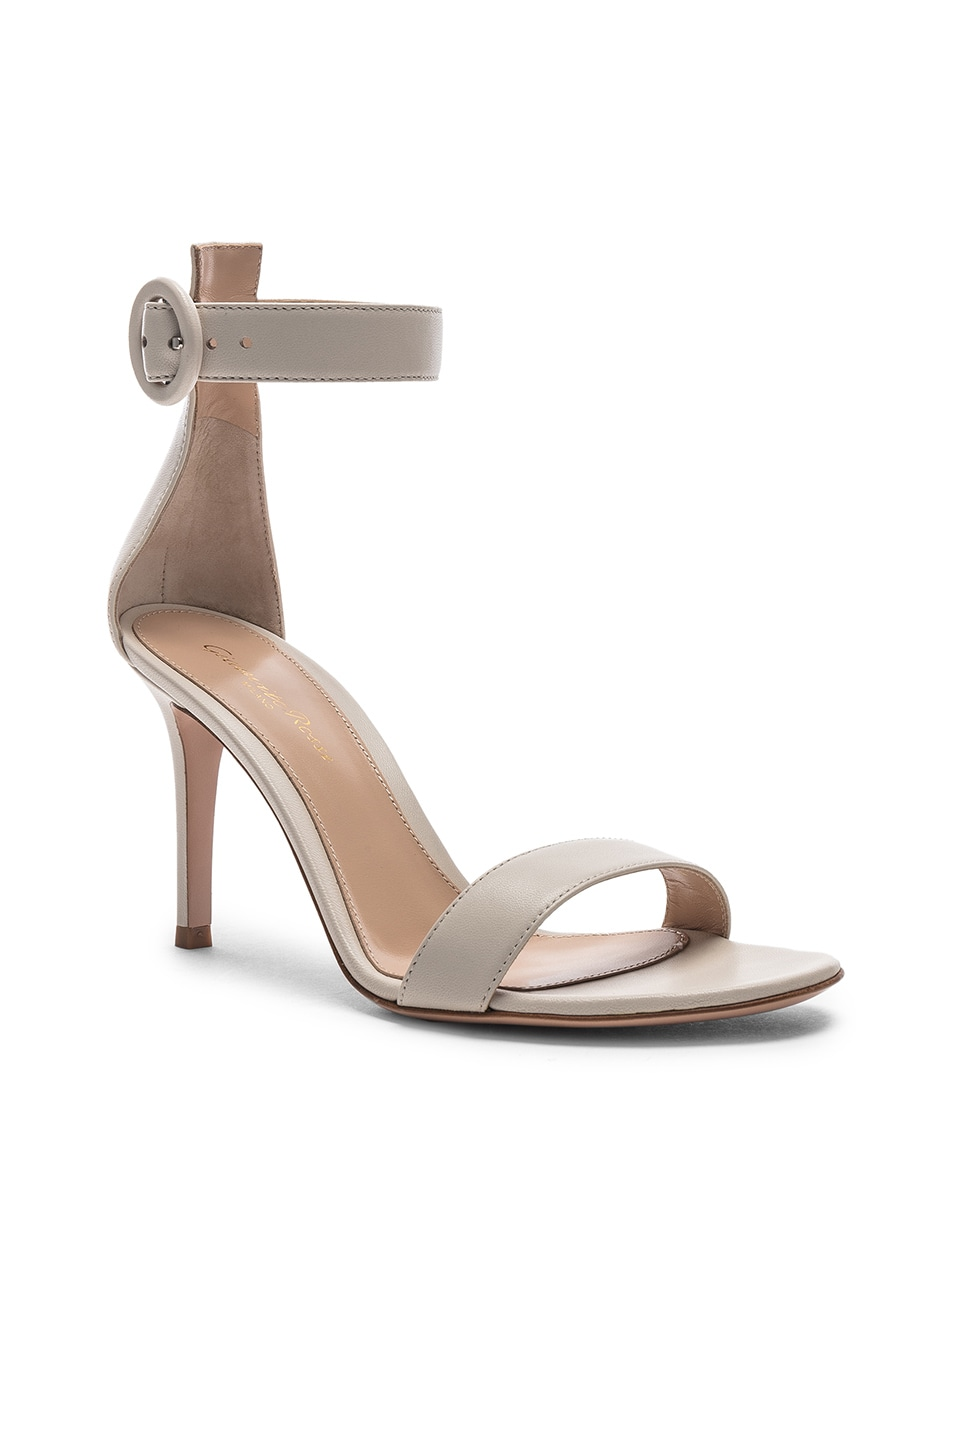 Image 2 of Gianvito Rossi Portofino Heels in Off White